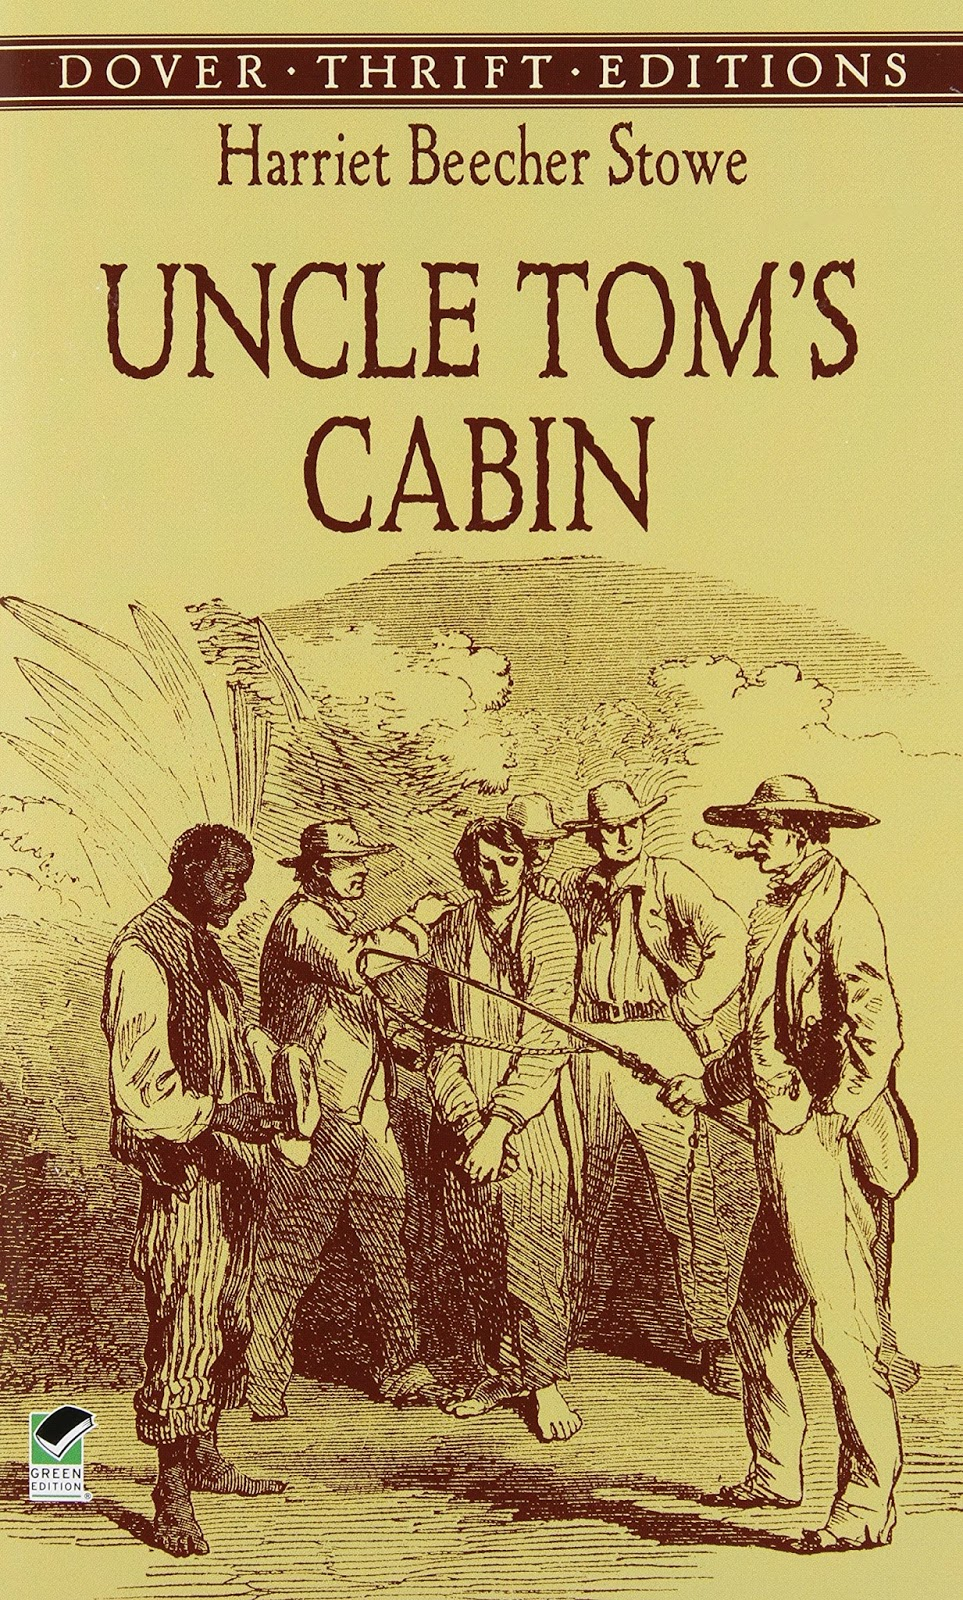 the points of harriet beecher stowe in writing uncle toms cabin Uncle tom's cabin, written and published by harriet beecher stowe in 1852, was the most popular 19th century novel and, after the bible, was the second-best-selling book of that century.